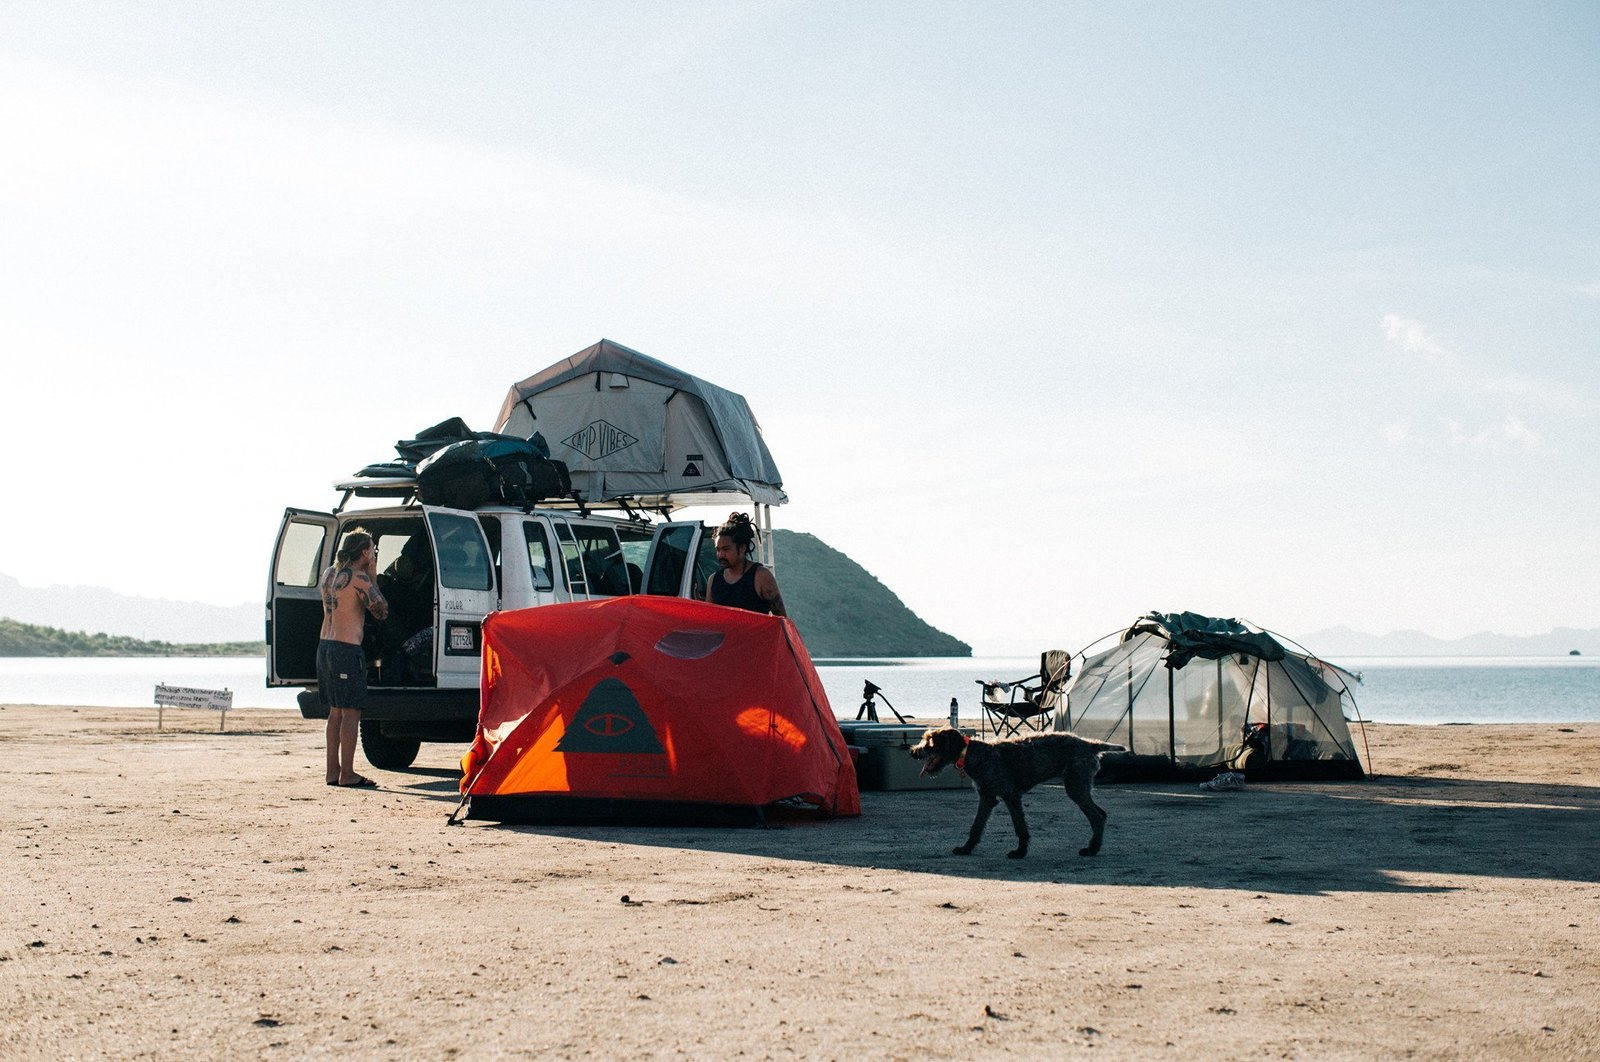 Photo 9 of 9 in Make the Most Out of Summer With These 9 Spectacular Tents